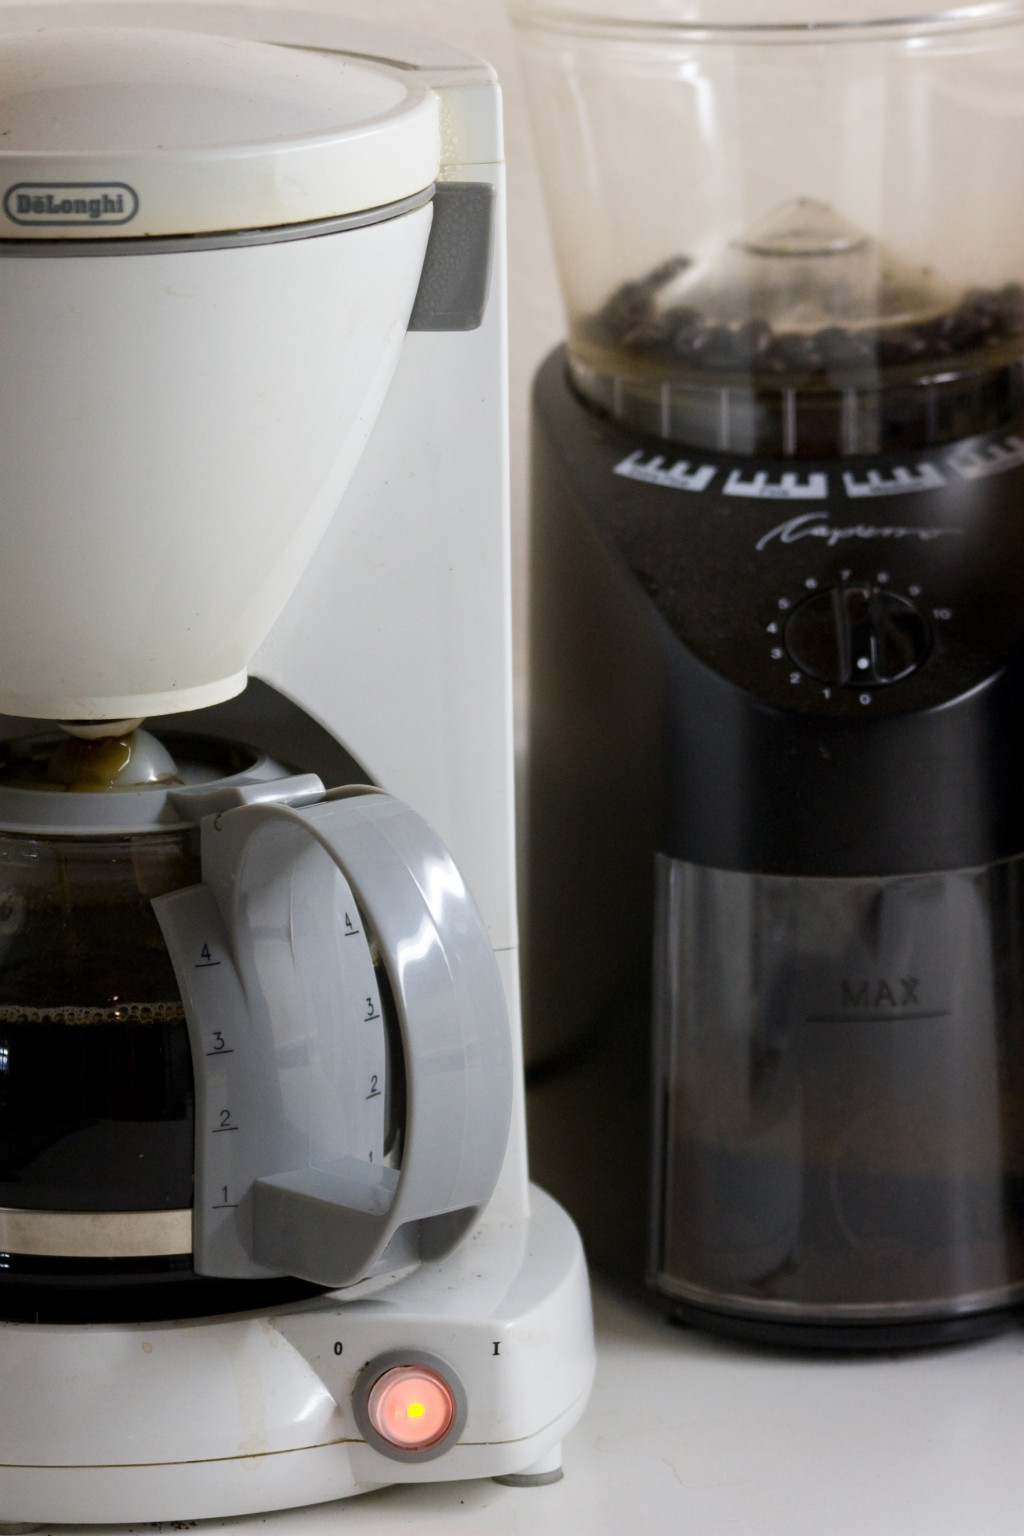 Coffee Maker Cleaning Without Vinegar : How to Clean a Coffee Maker with Vinegar